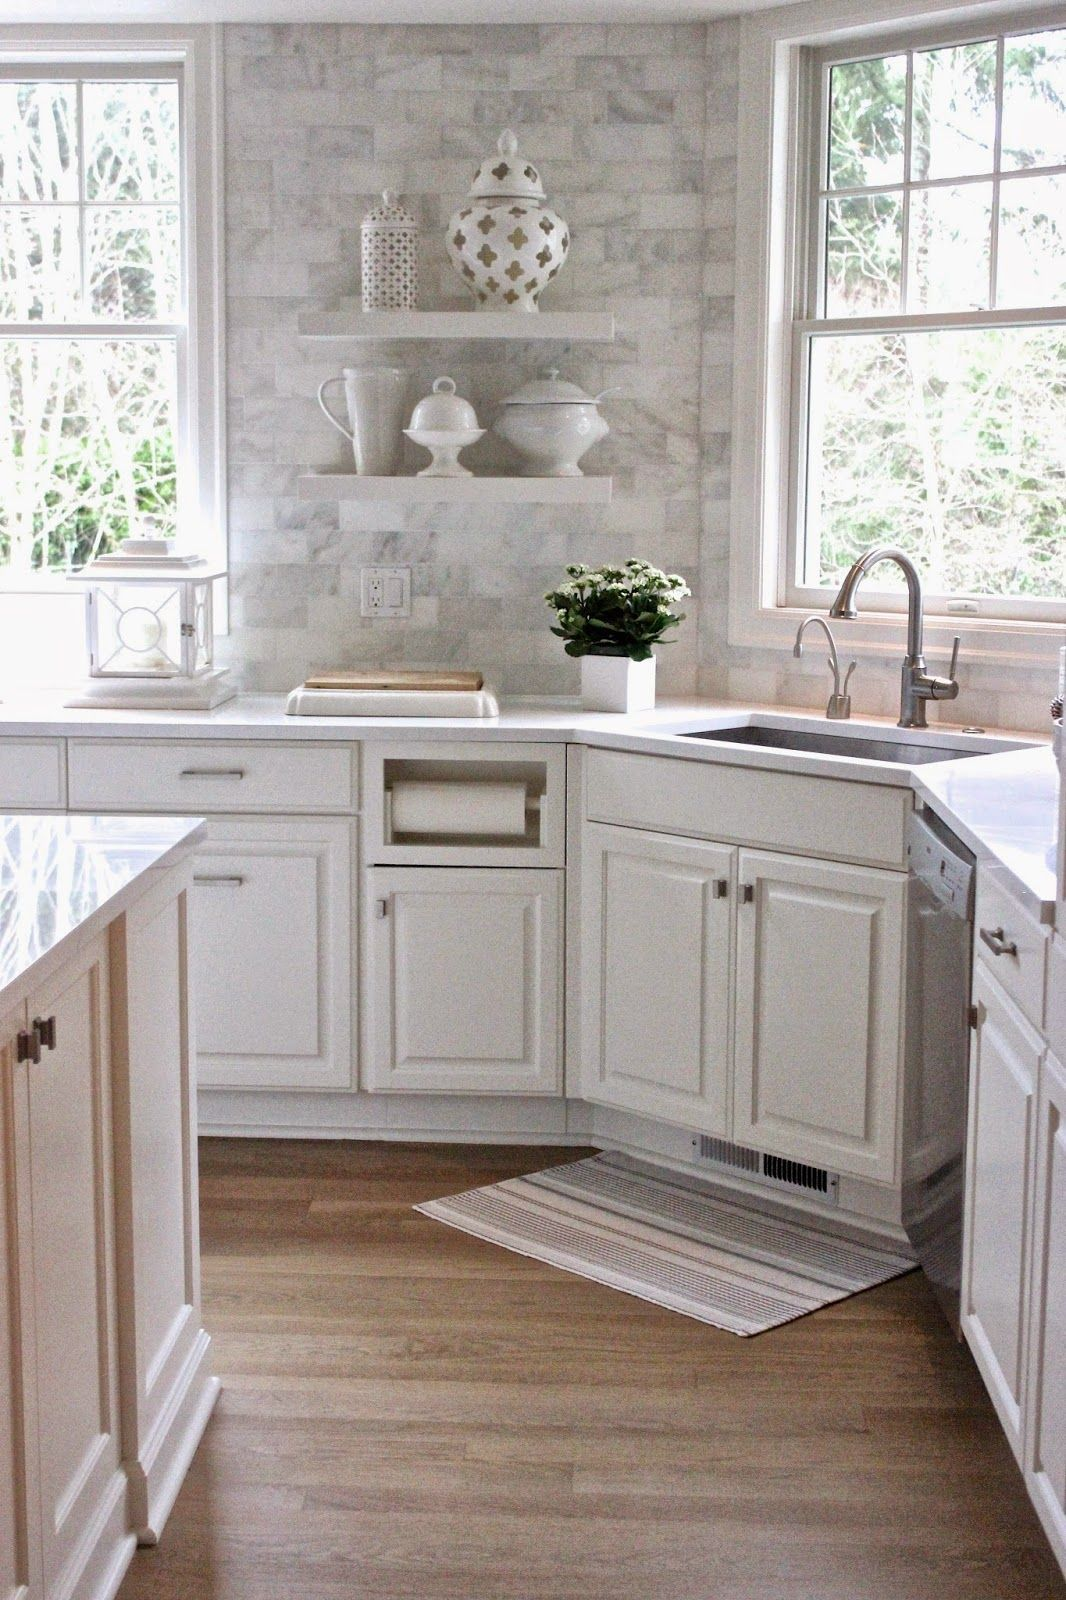 All about kitchen countertop ideas budget, diy, cheap ...